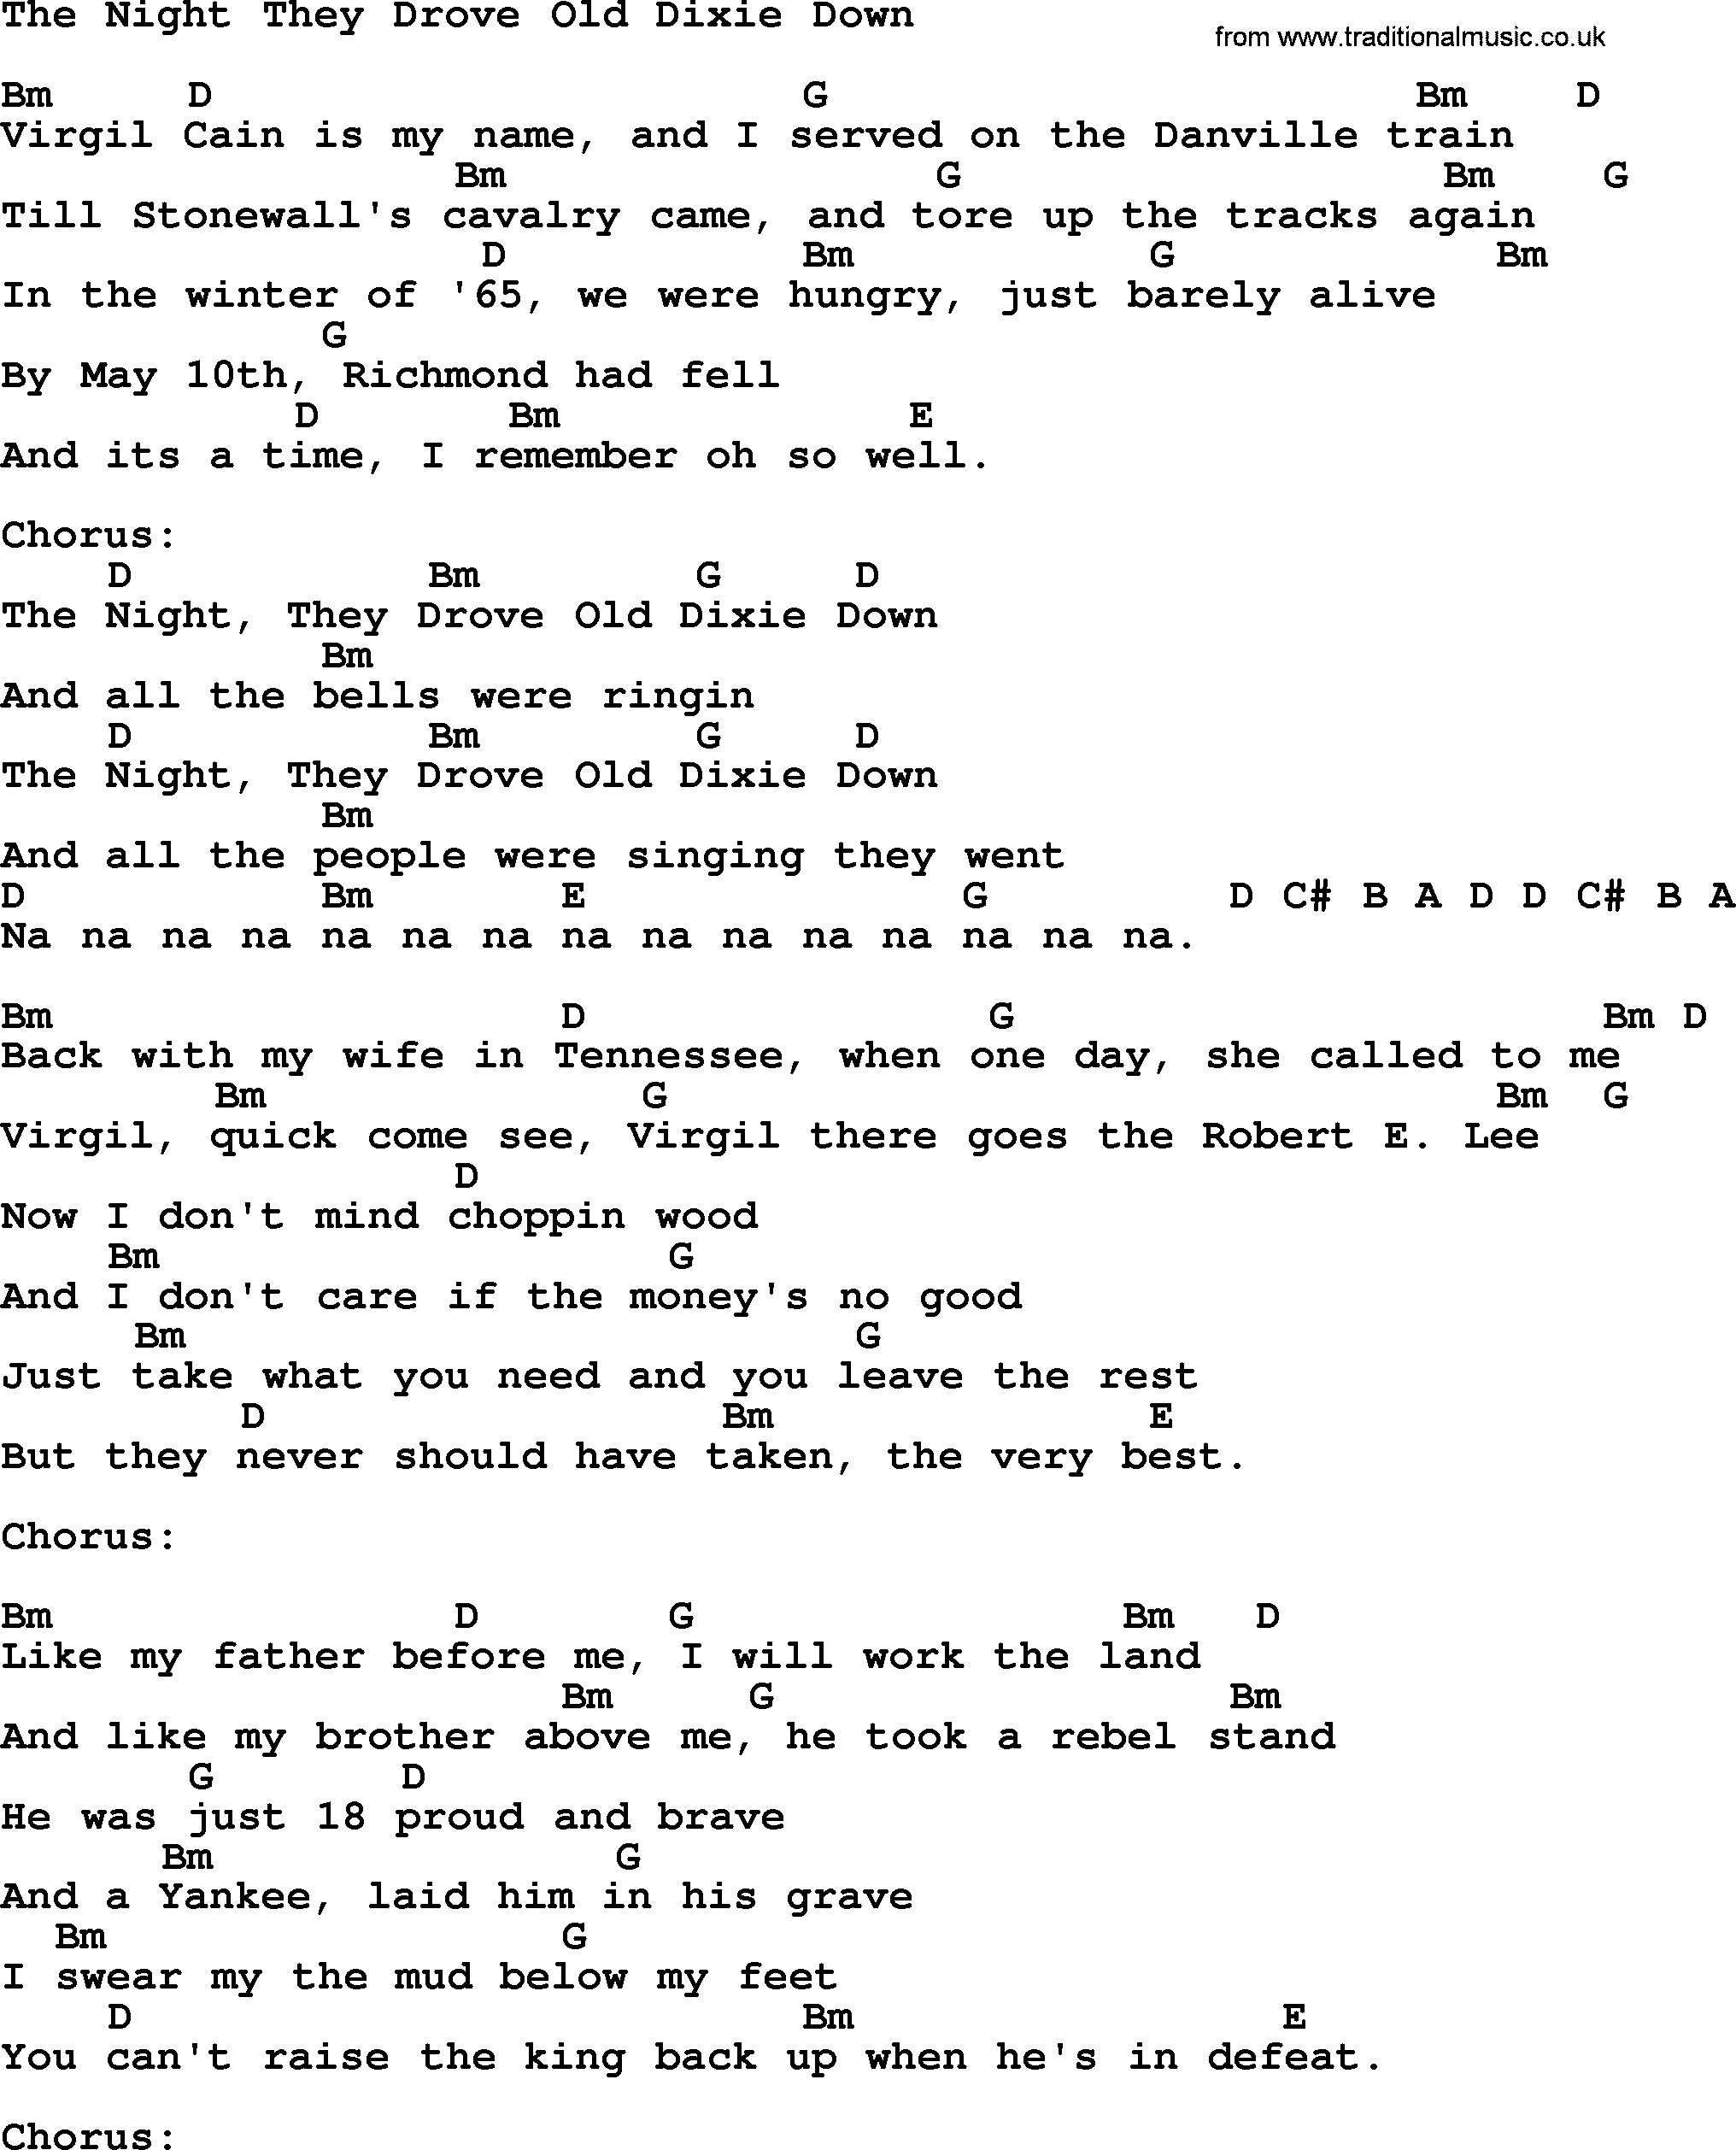 Johnny Cash Song The Night They Drove Old Dixie Down Lyrics And Chords